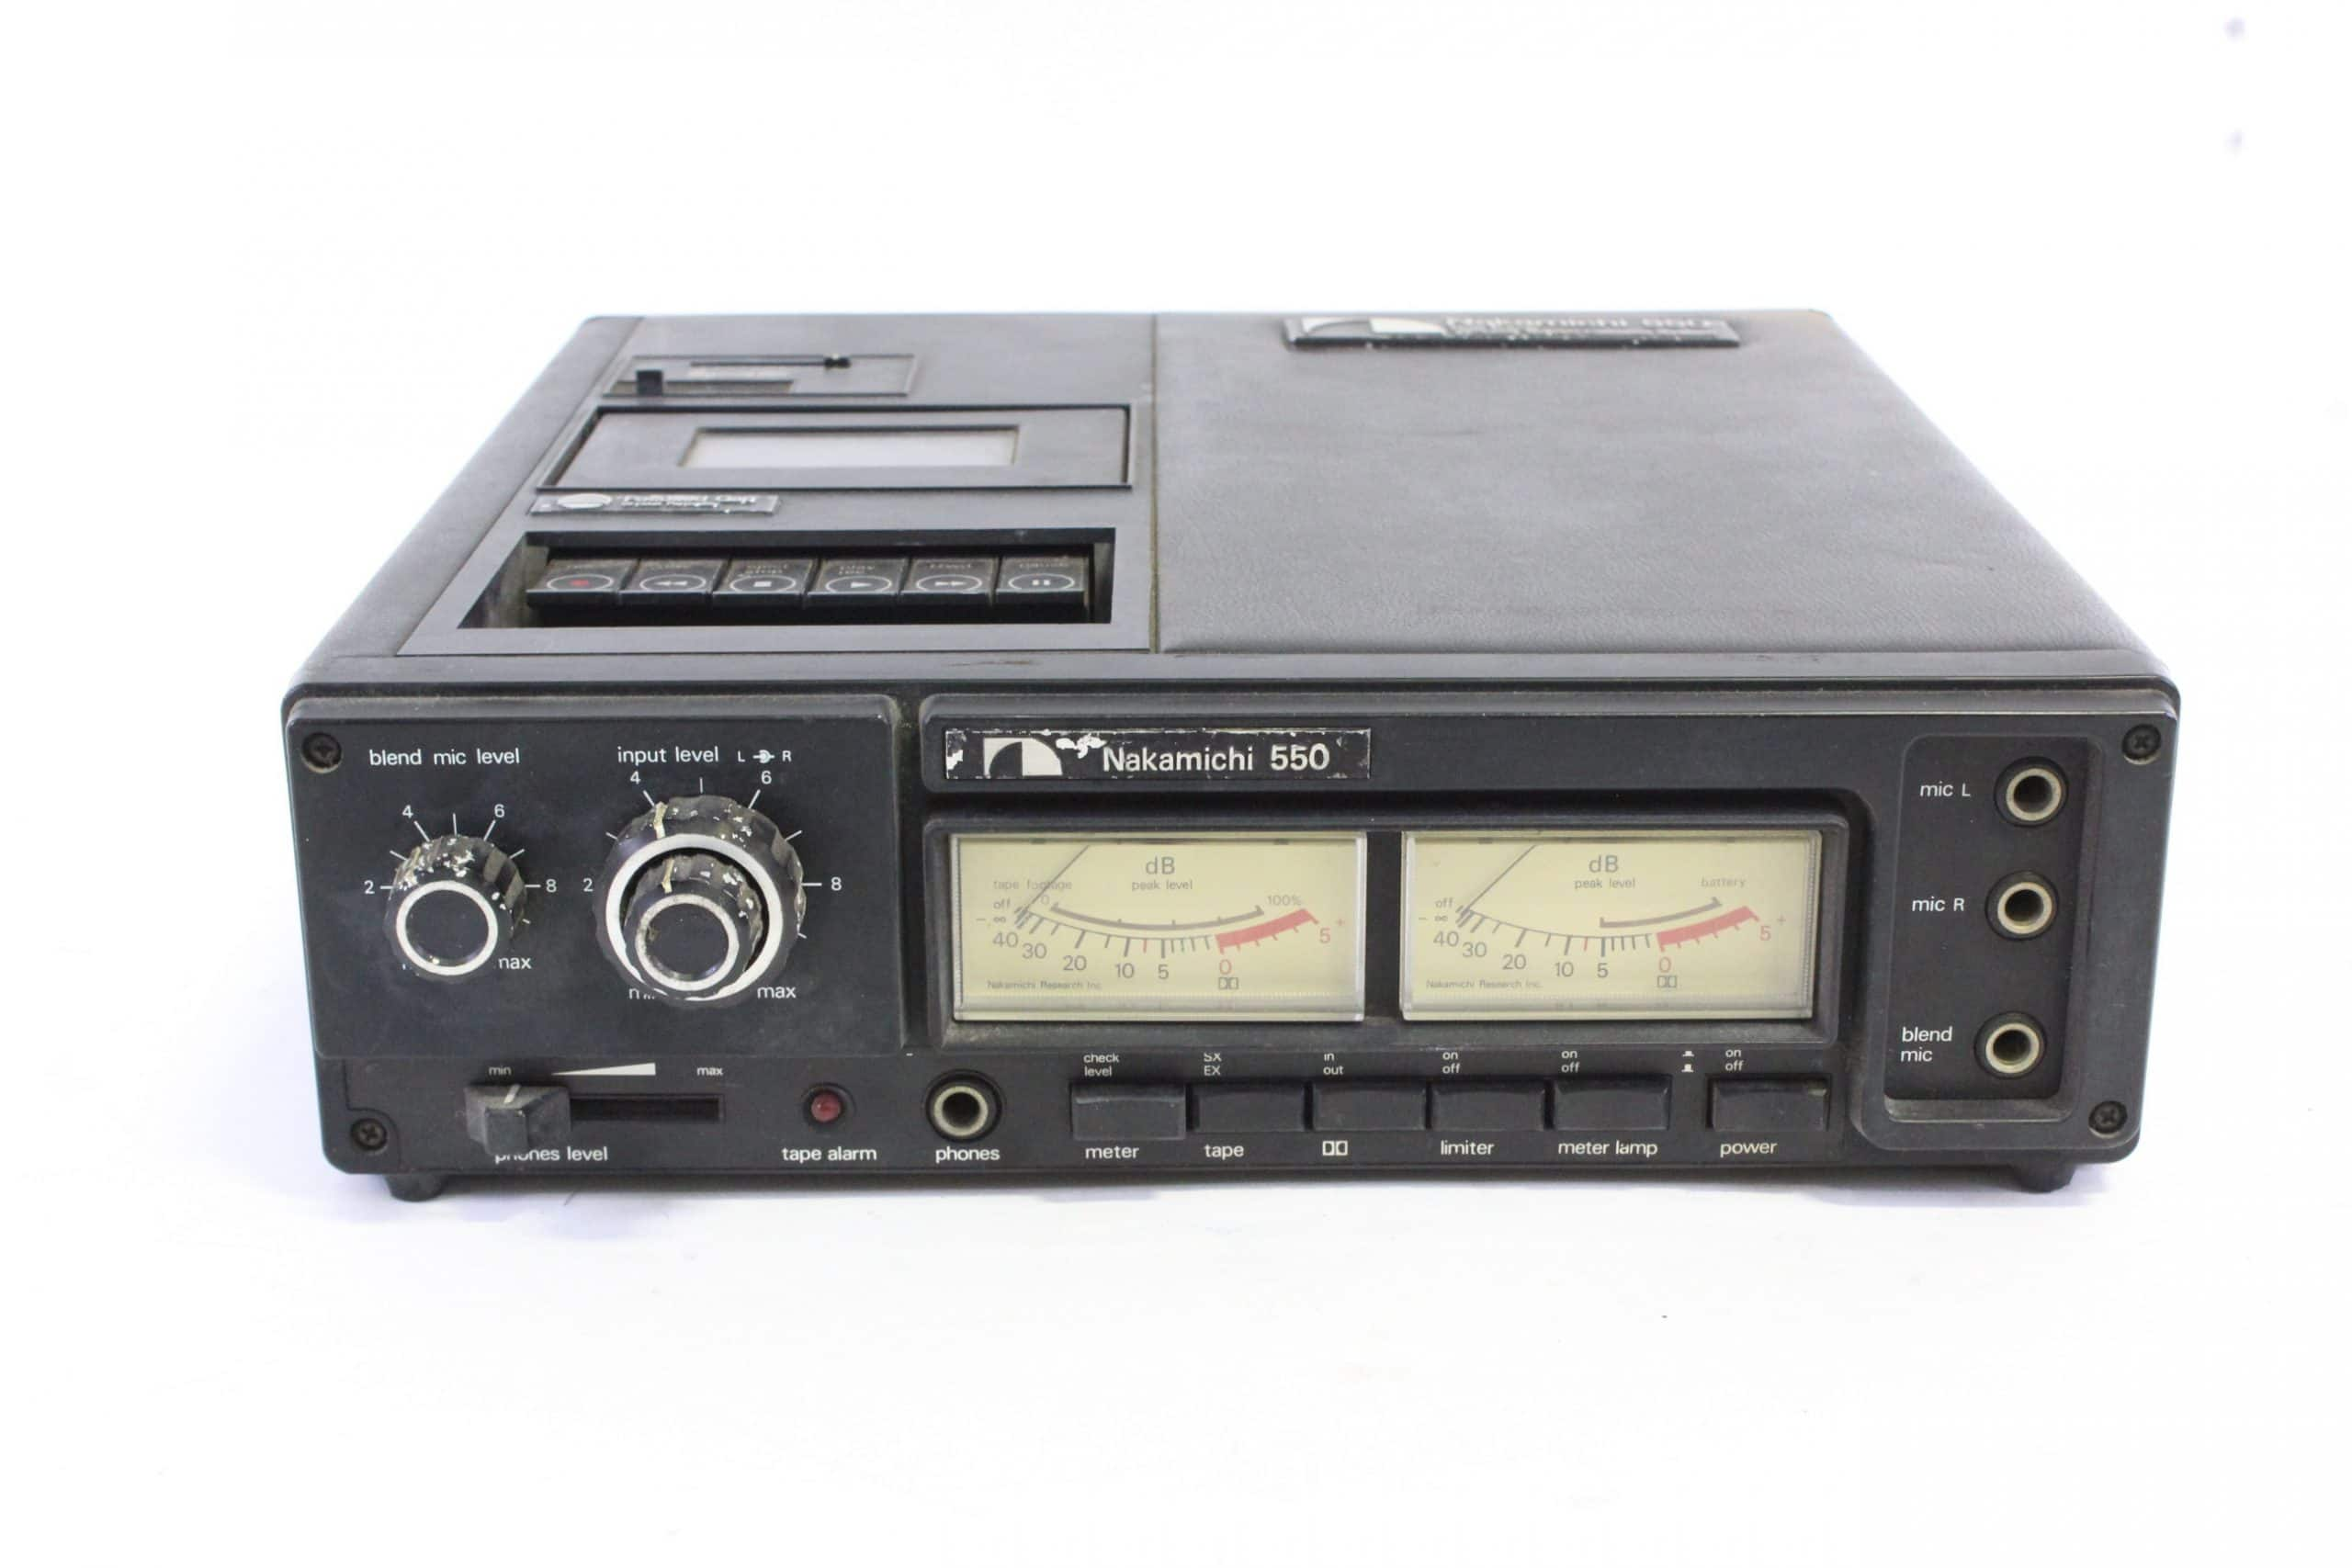 nakamichi-550-dual-tracer-veratile-stereo-cassette-system-w-power-supply main